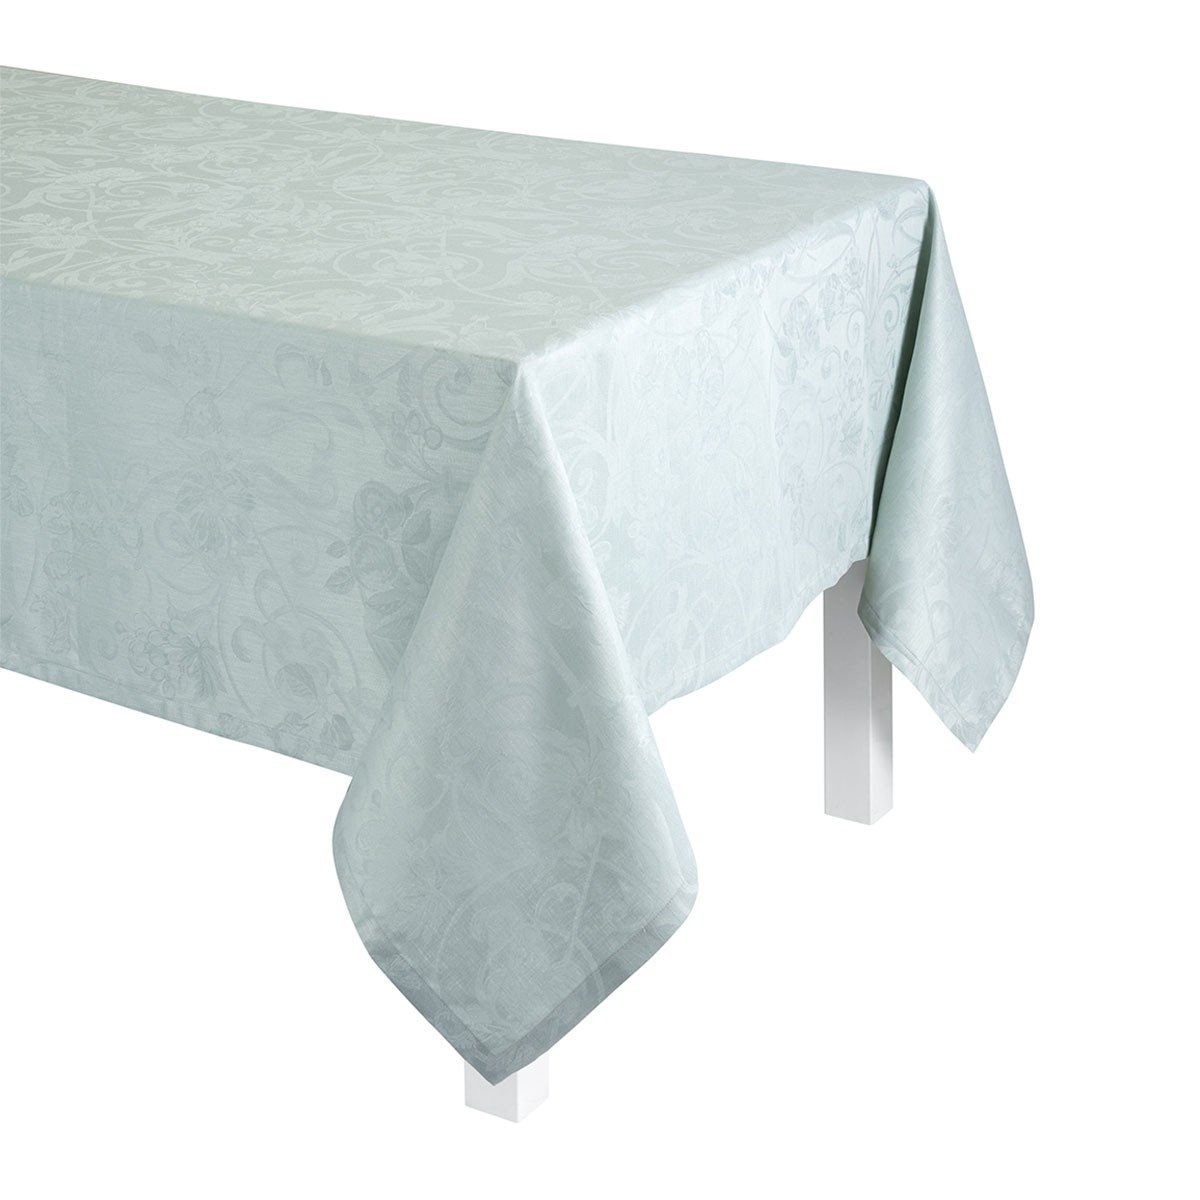 Le Jacquard Français Table Linen Tivoli in Mist Fig Linens Tablecloth